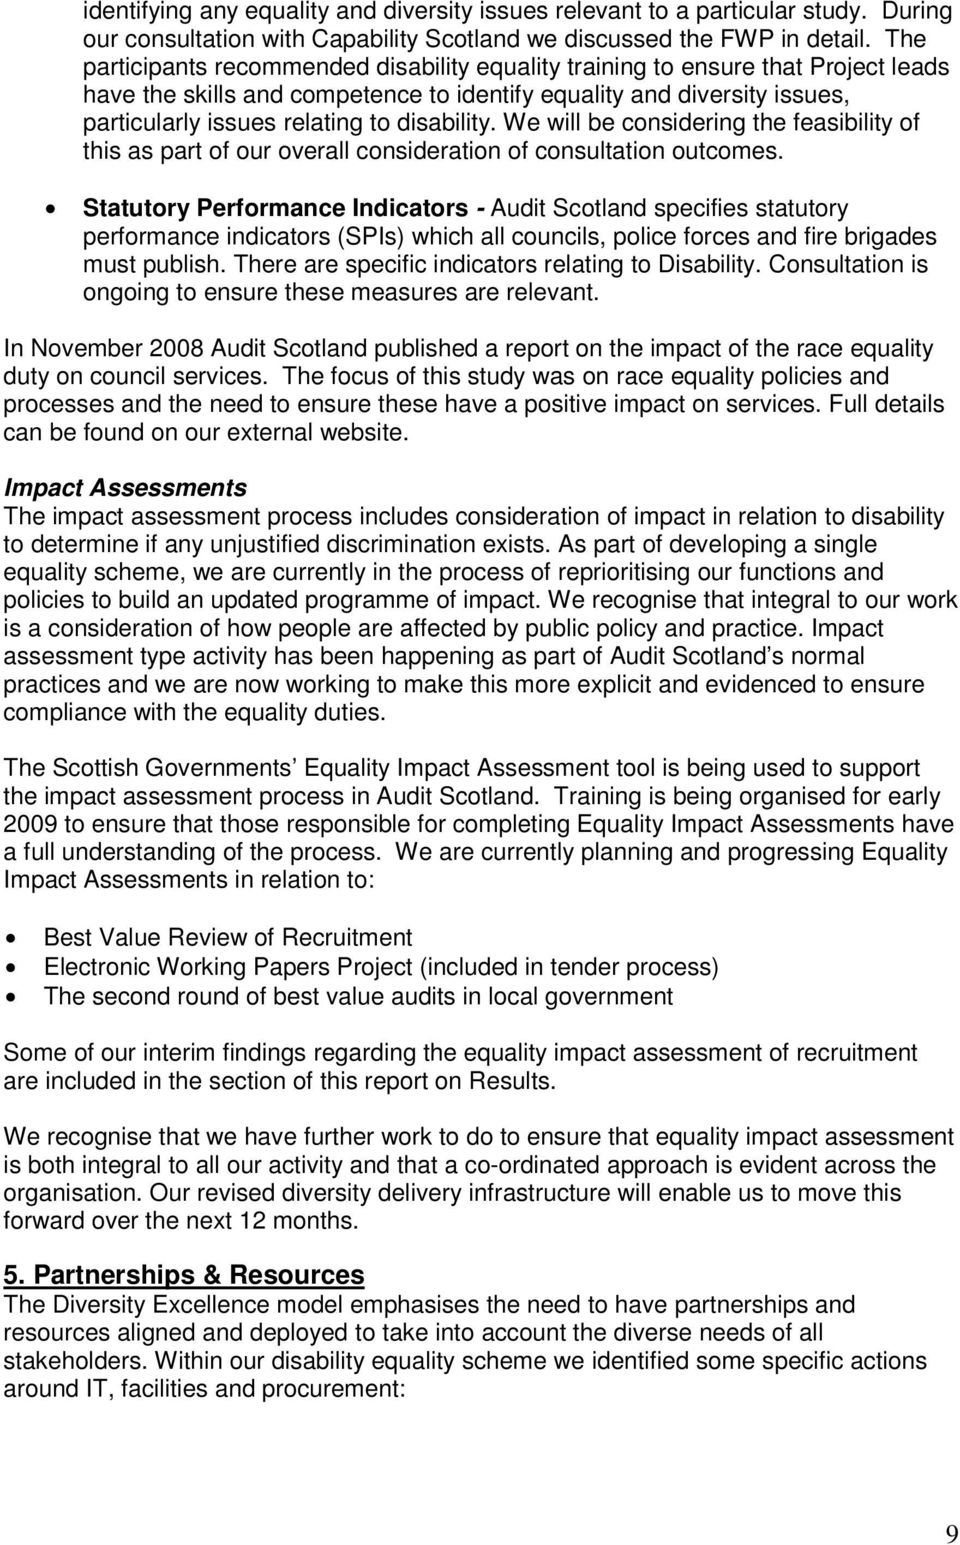 disability. We will be considering the feasibility of this as part of our overall consideration of consultation outcomes.